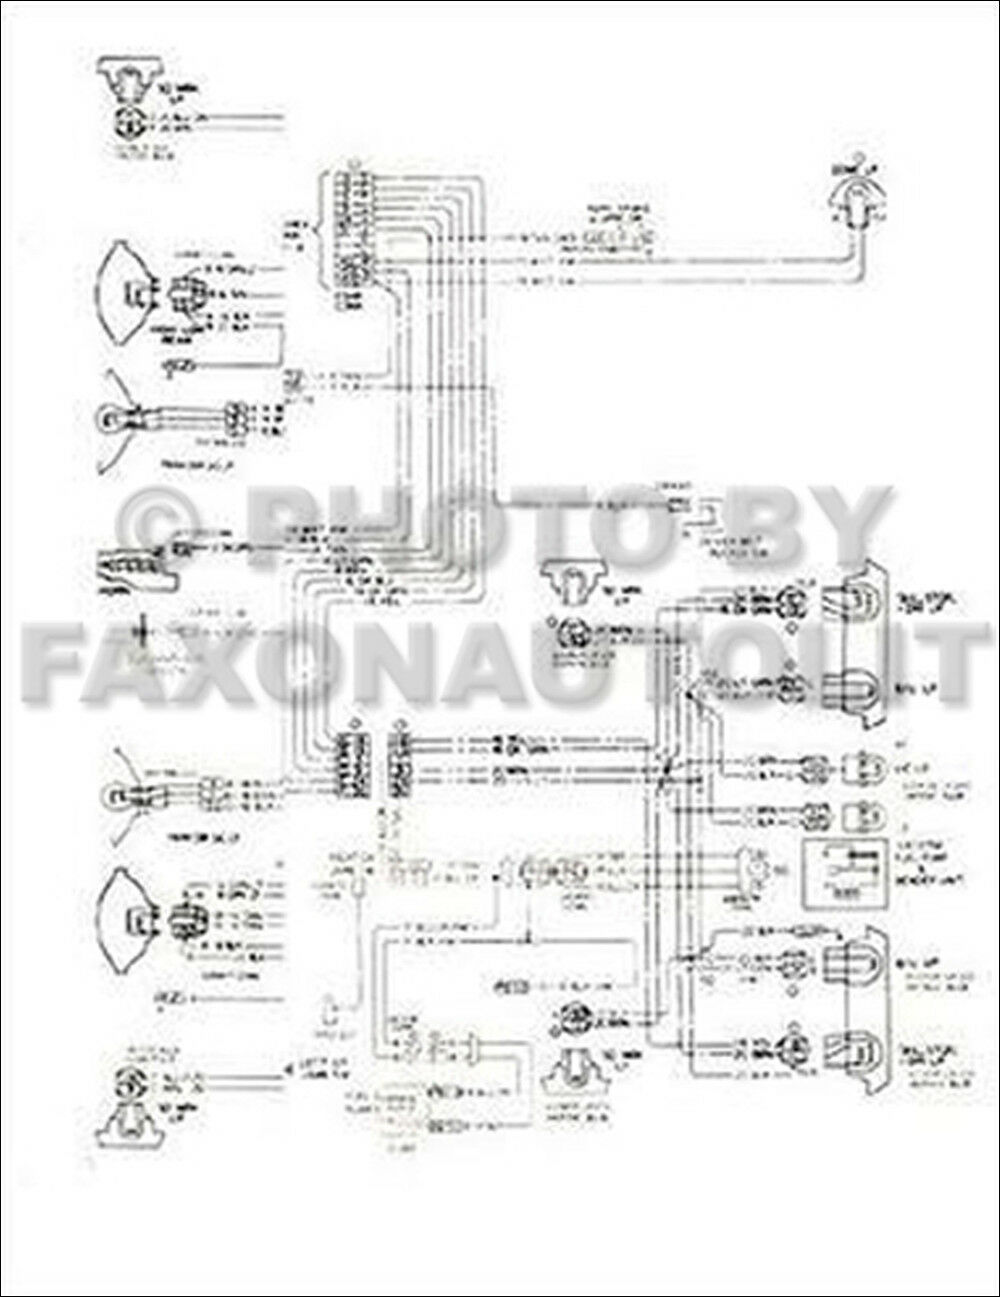 1976 Chevy Chevette Foldout Wiring Diagrams Electrical Schematic Original  OEM | eBay